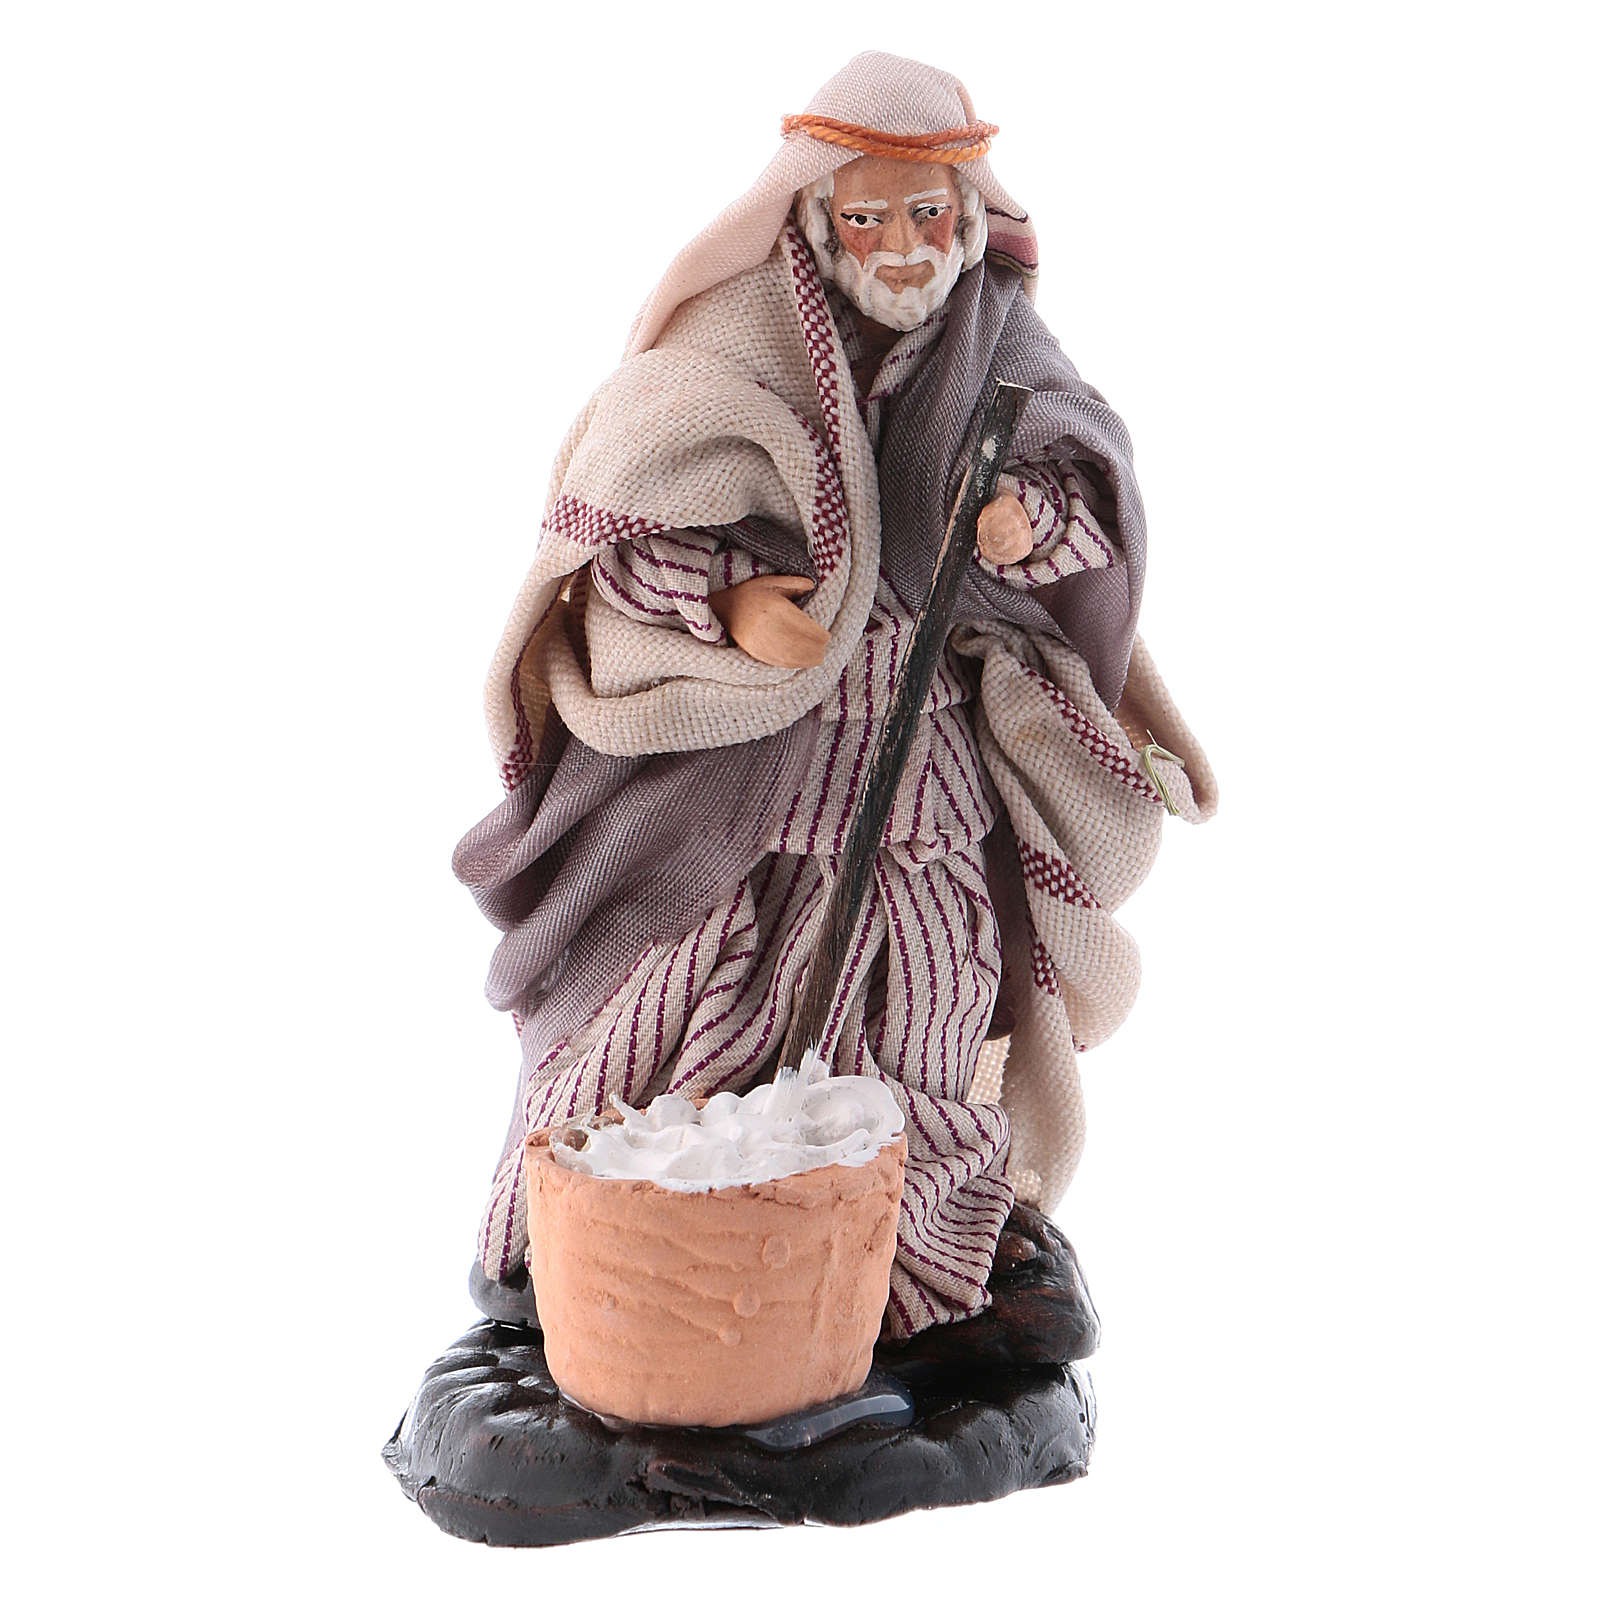 Neapolitan nativity figurine, cheese maker 8cm 4